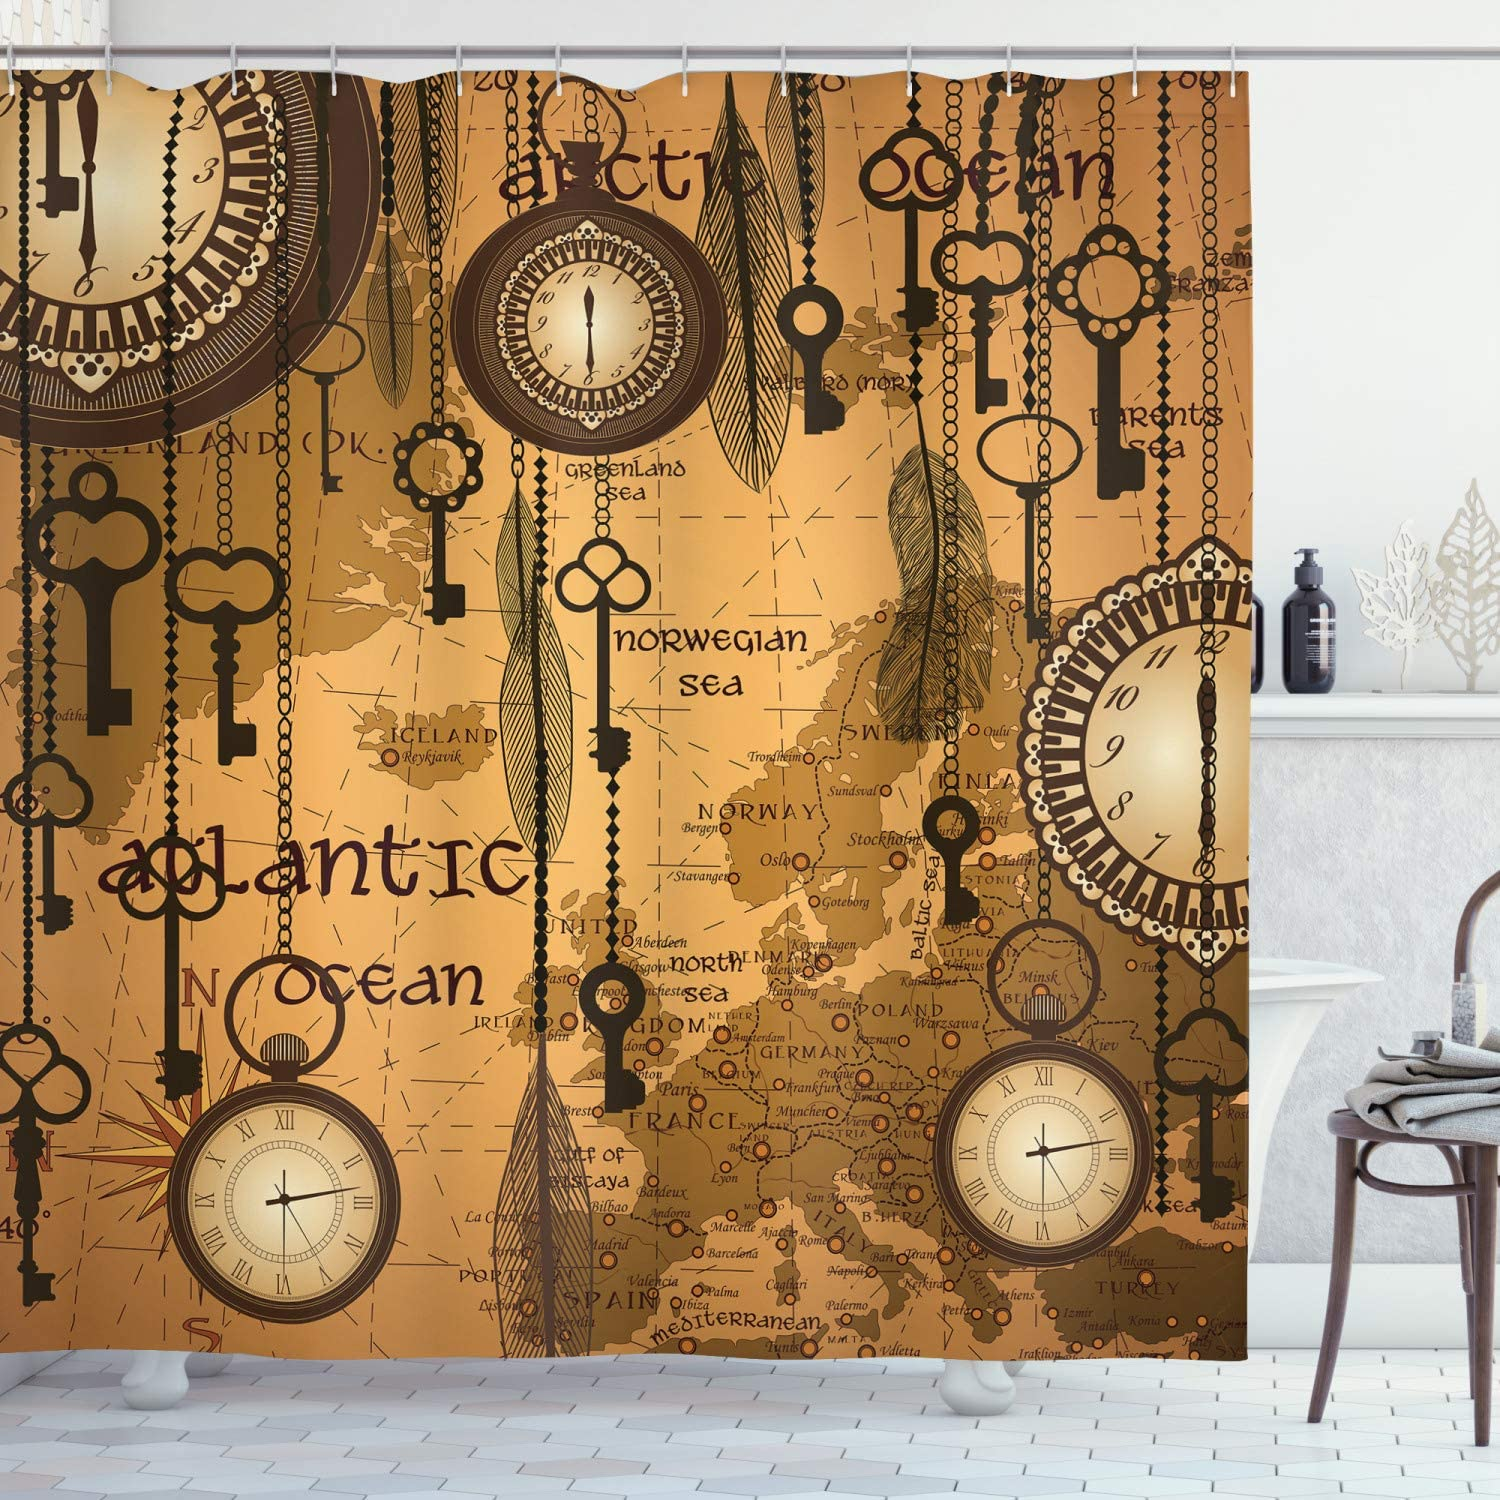 Ambesonne Antique Shower Curtain, Antique Background with Map Clocks and Feathers Time Classics Country Style, Cloth Fabric Bathroom Decor Set with Hooks, 70